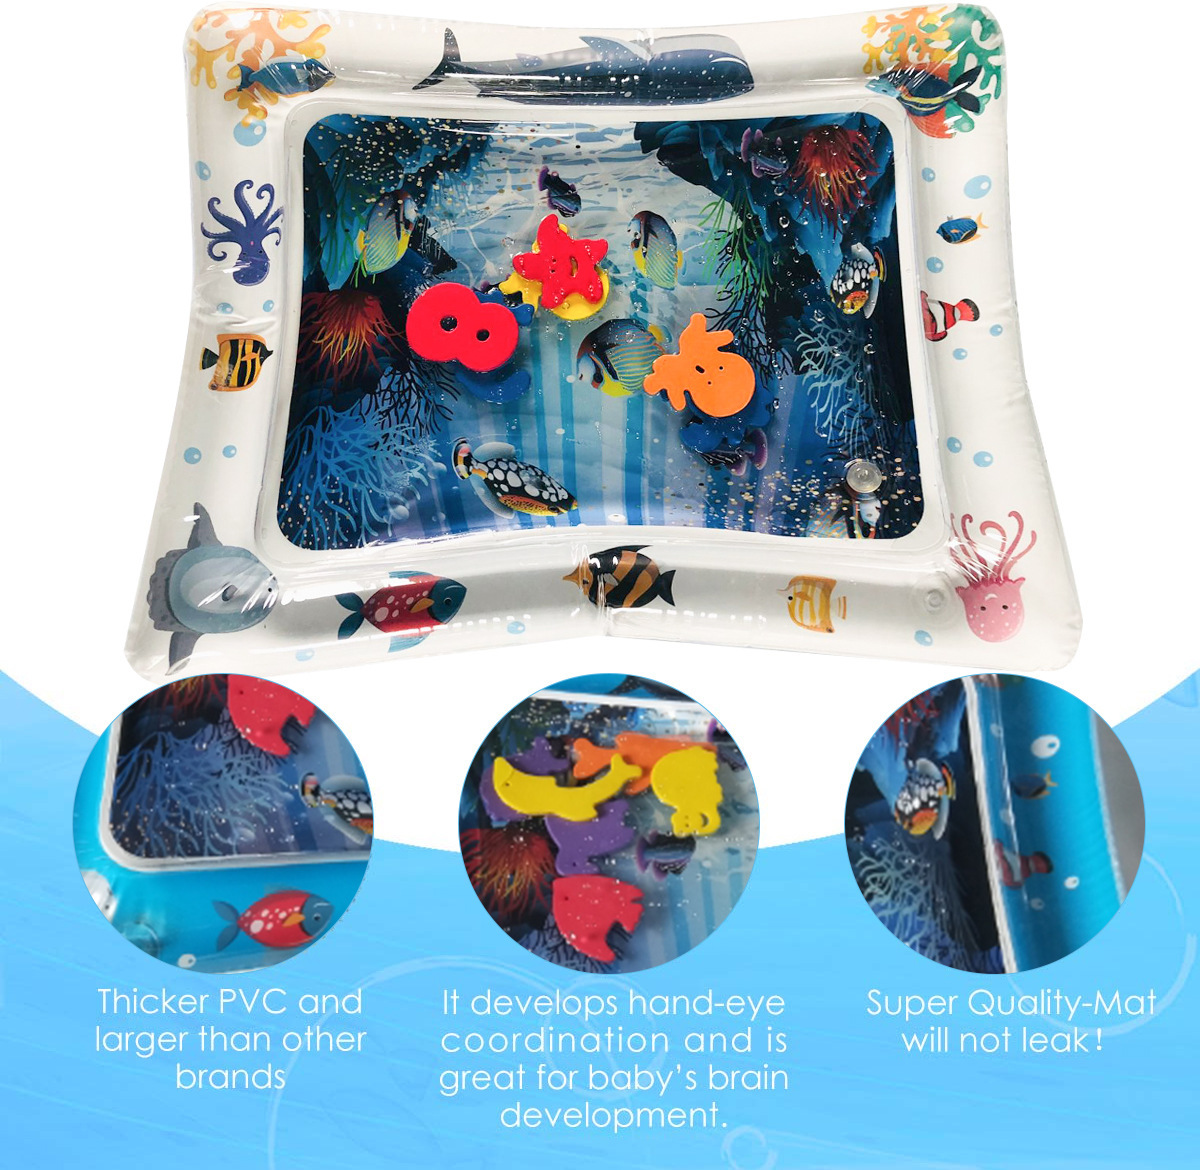 HTB1zuXlMNjaK1RjSZFAq6zdLFXas Baby Inflatable Water Play Mat Infant Summer Beach Water Mat Toddler Fun Activity Play Toys for Sensory Stimulation Motor Skills